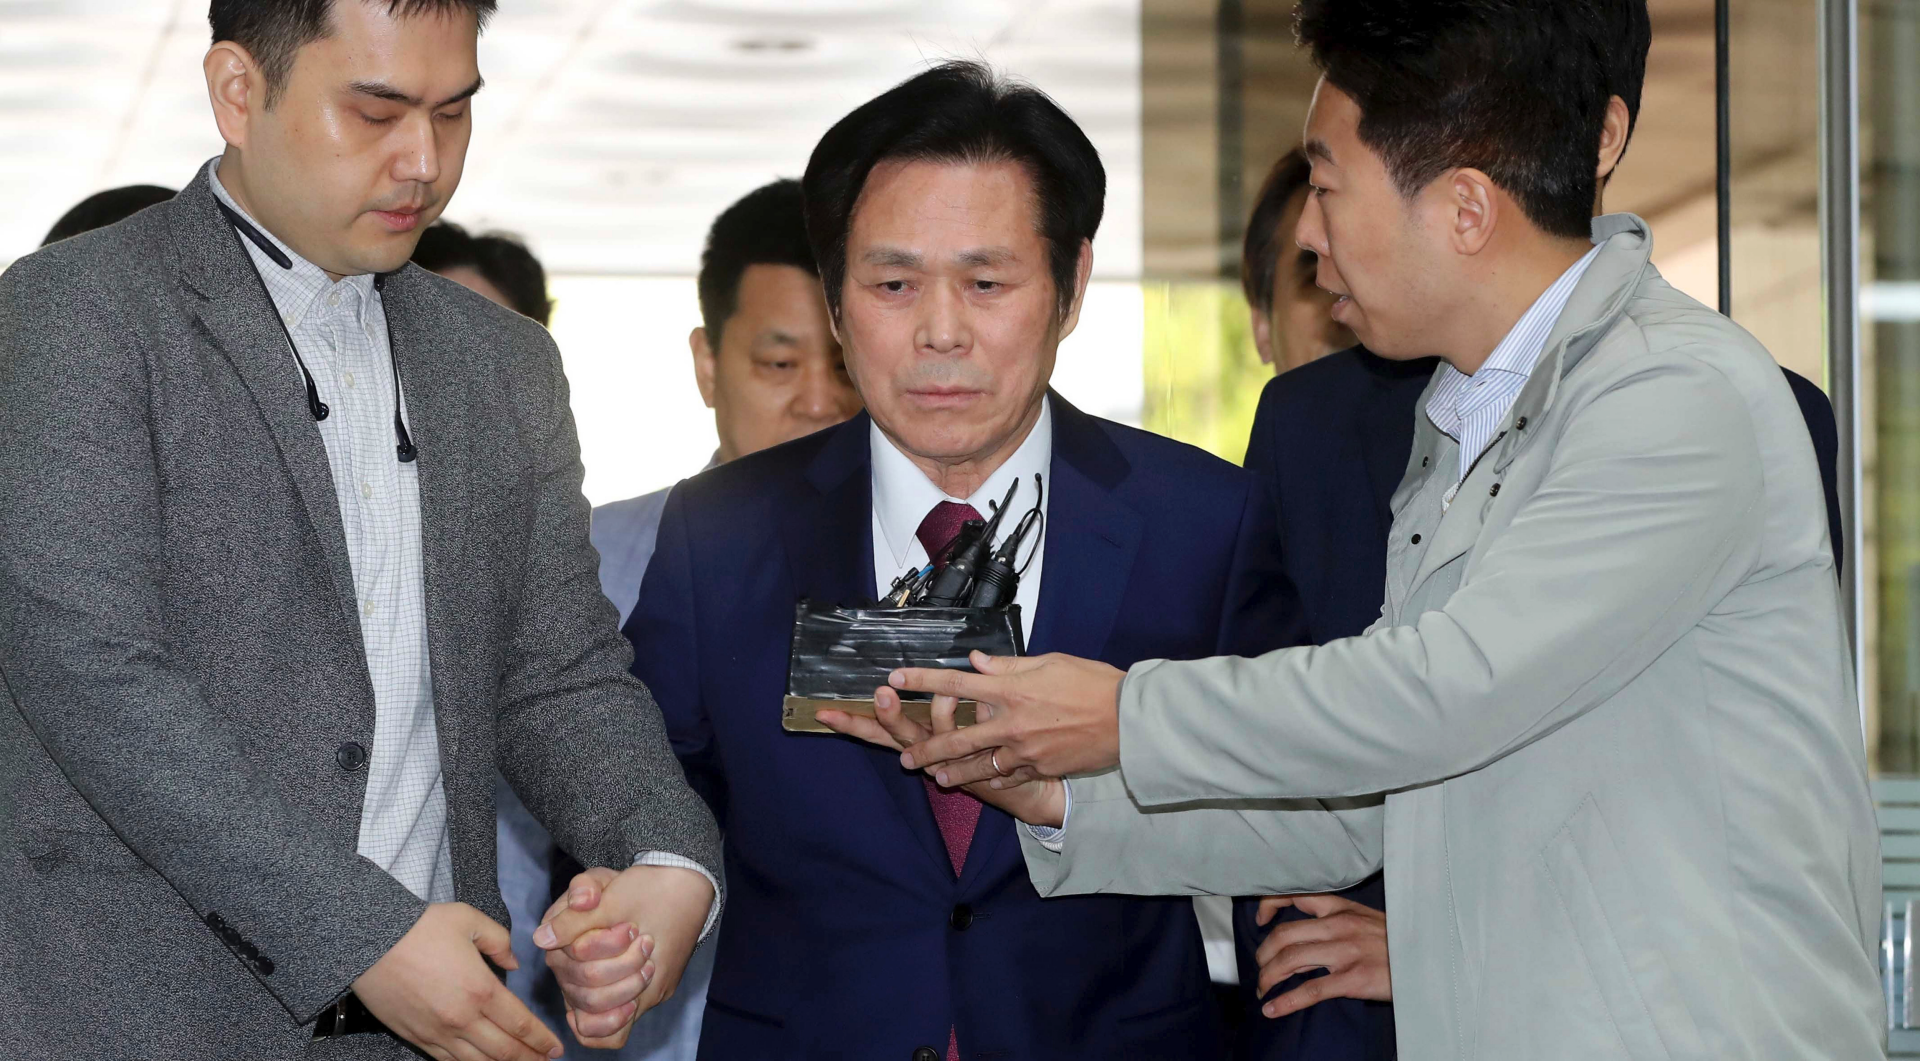 S. Korea pastor gets 15-year jail term for raping followers